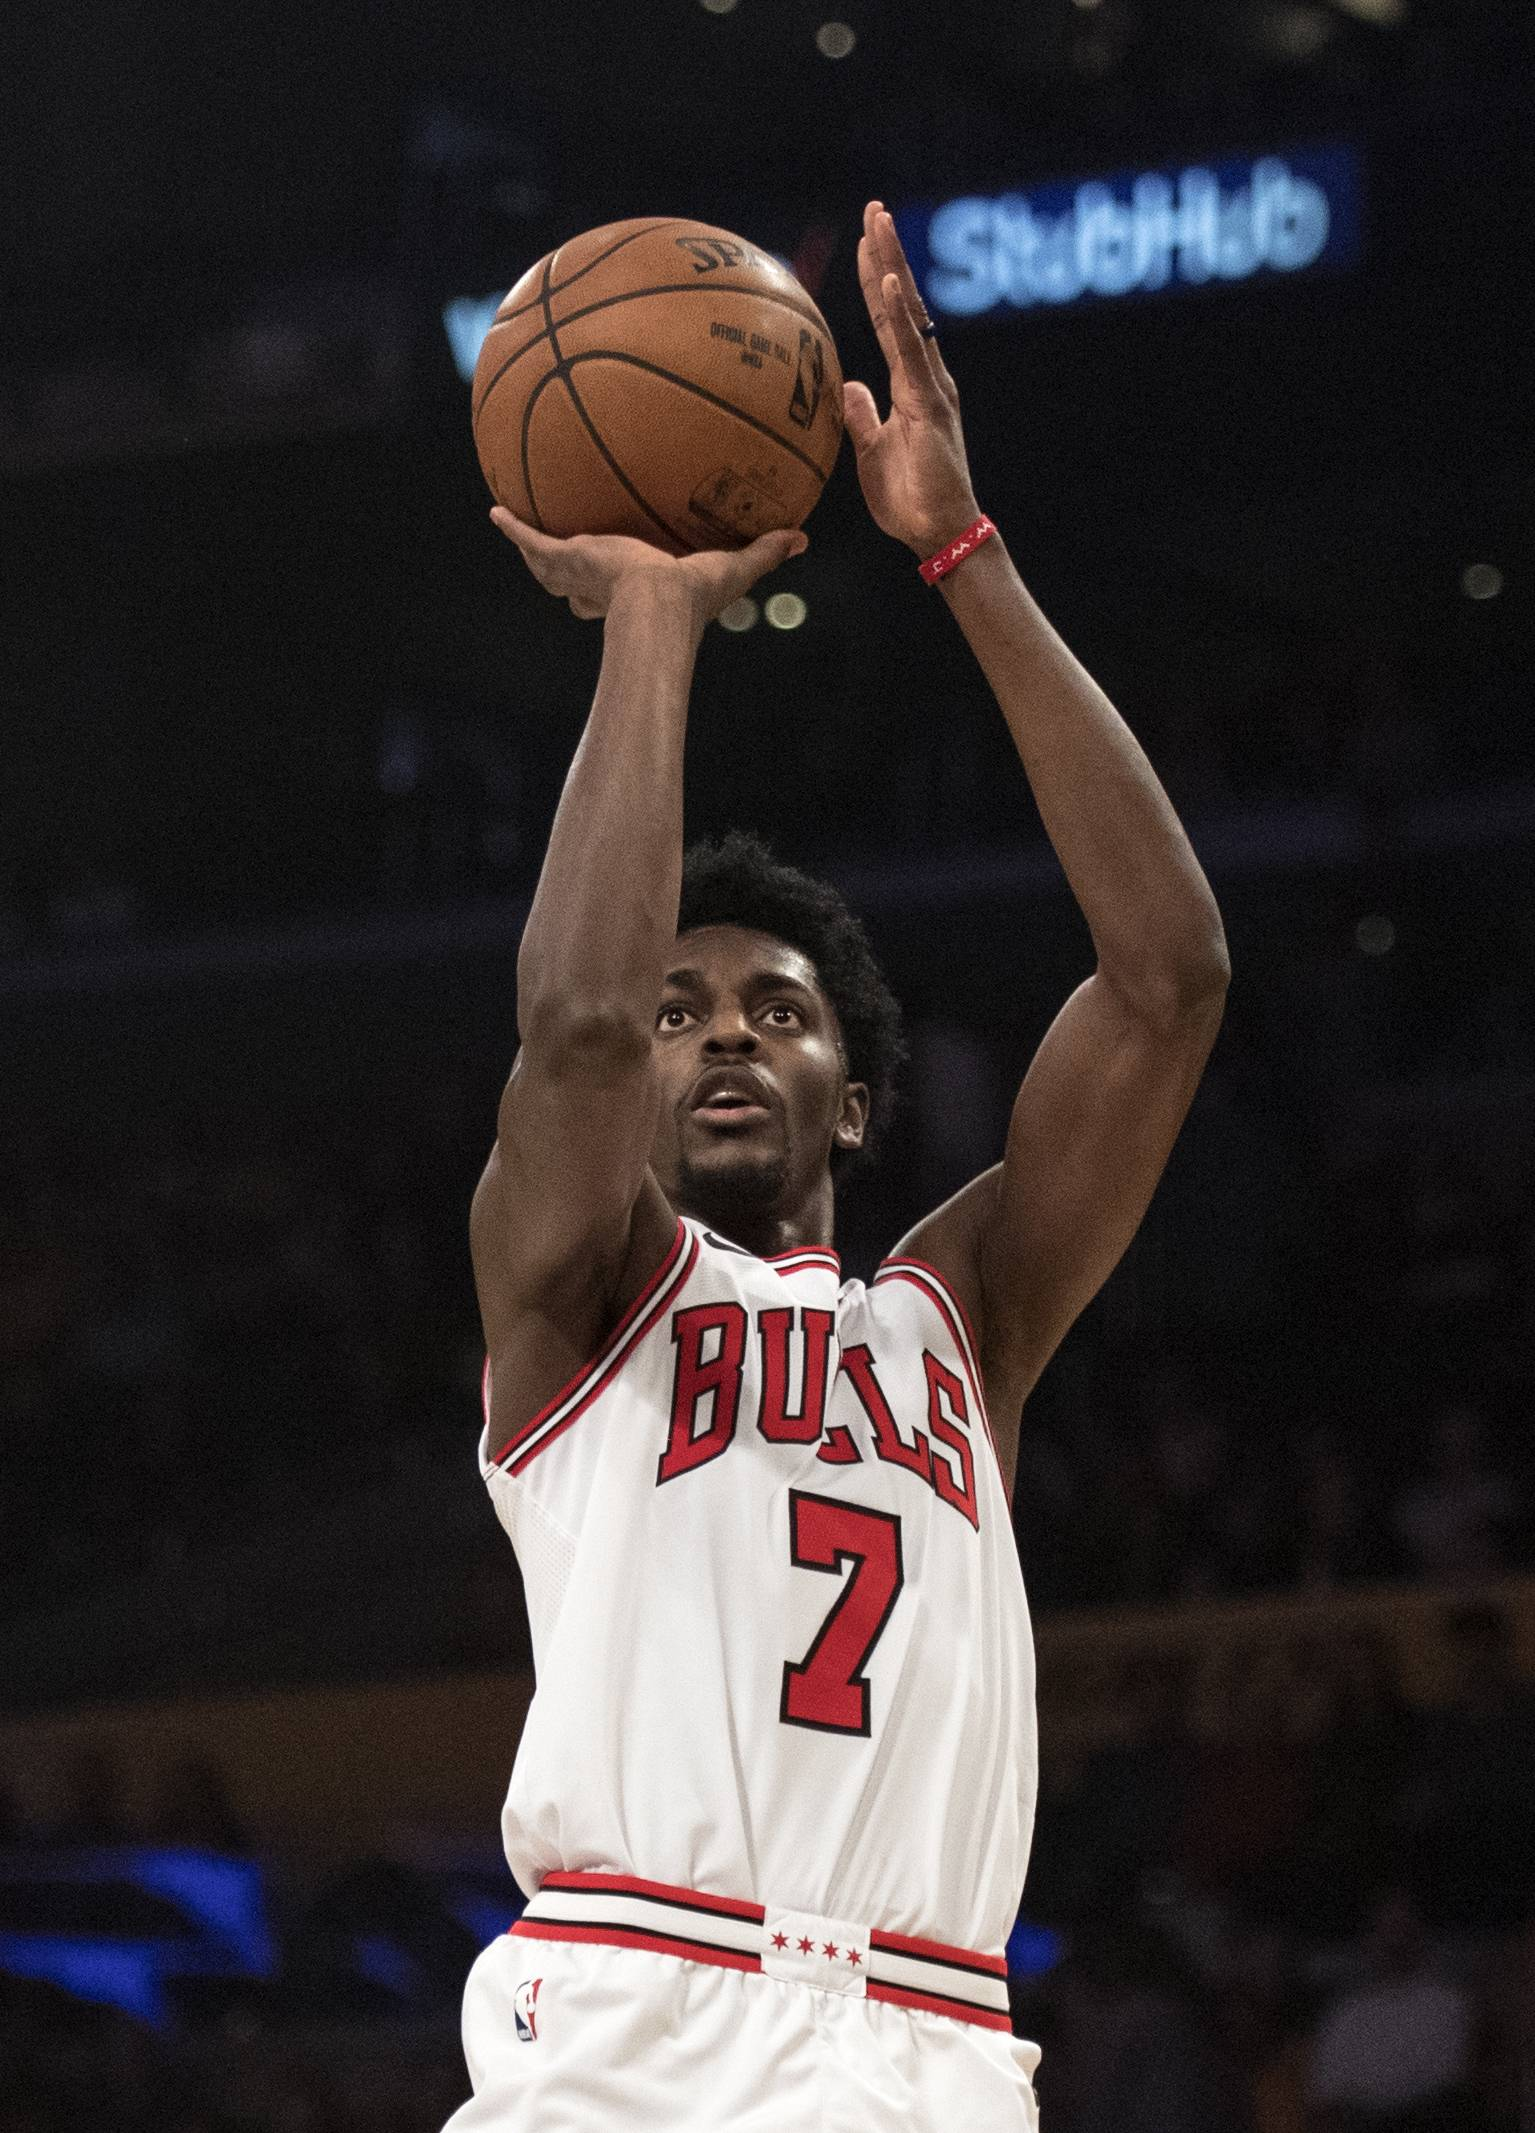 Chicago Bulls guard Justin Holiday during the first half of an NBA basketball game Tuesday, Nov. 21, 2017, in Los Angeles. (AP Photo/Kyusung Gong)